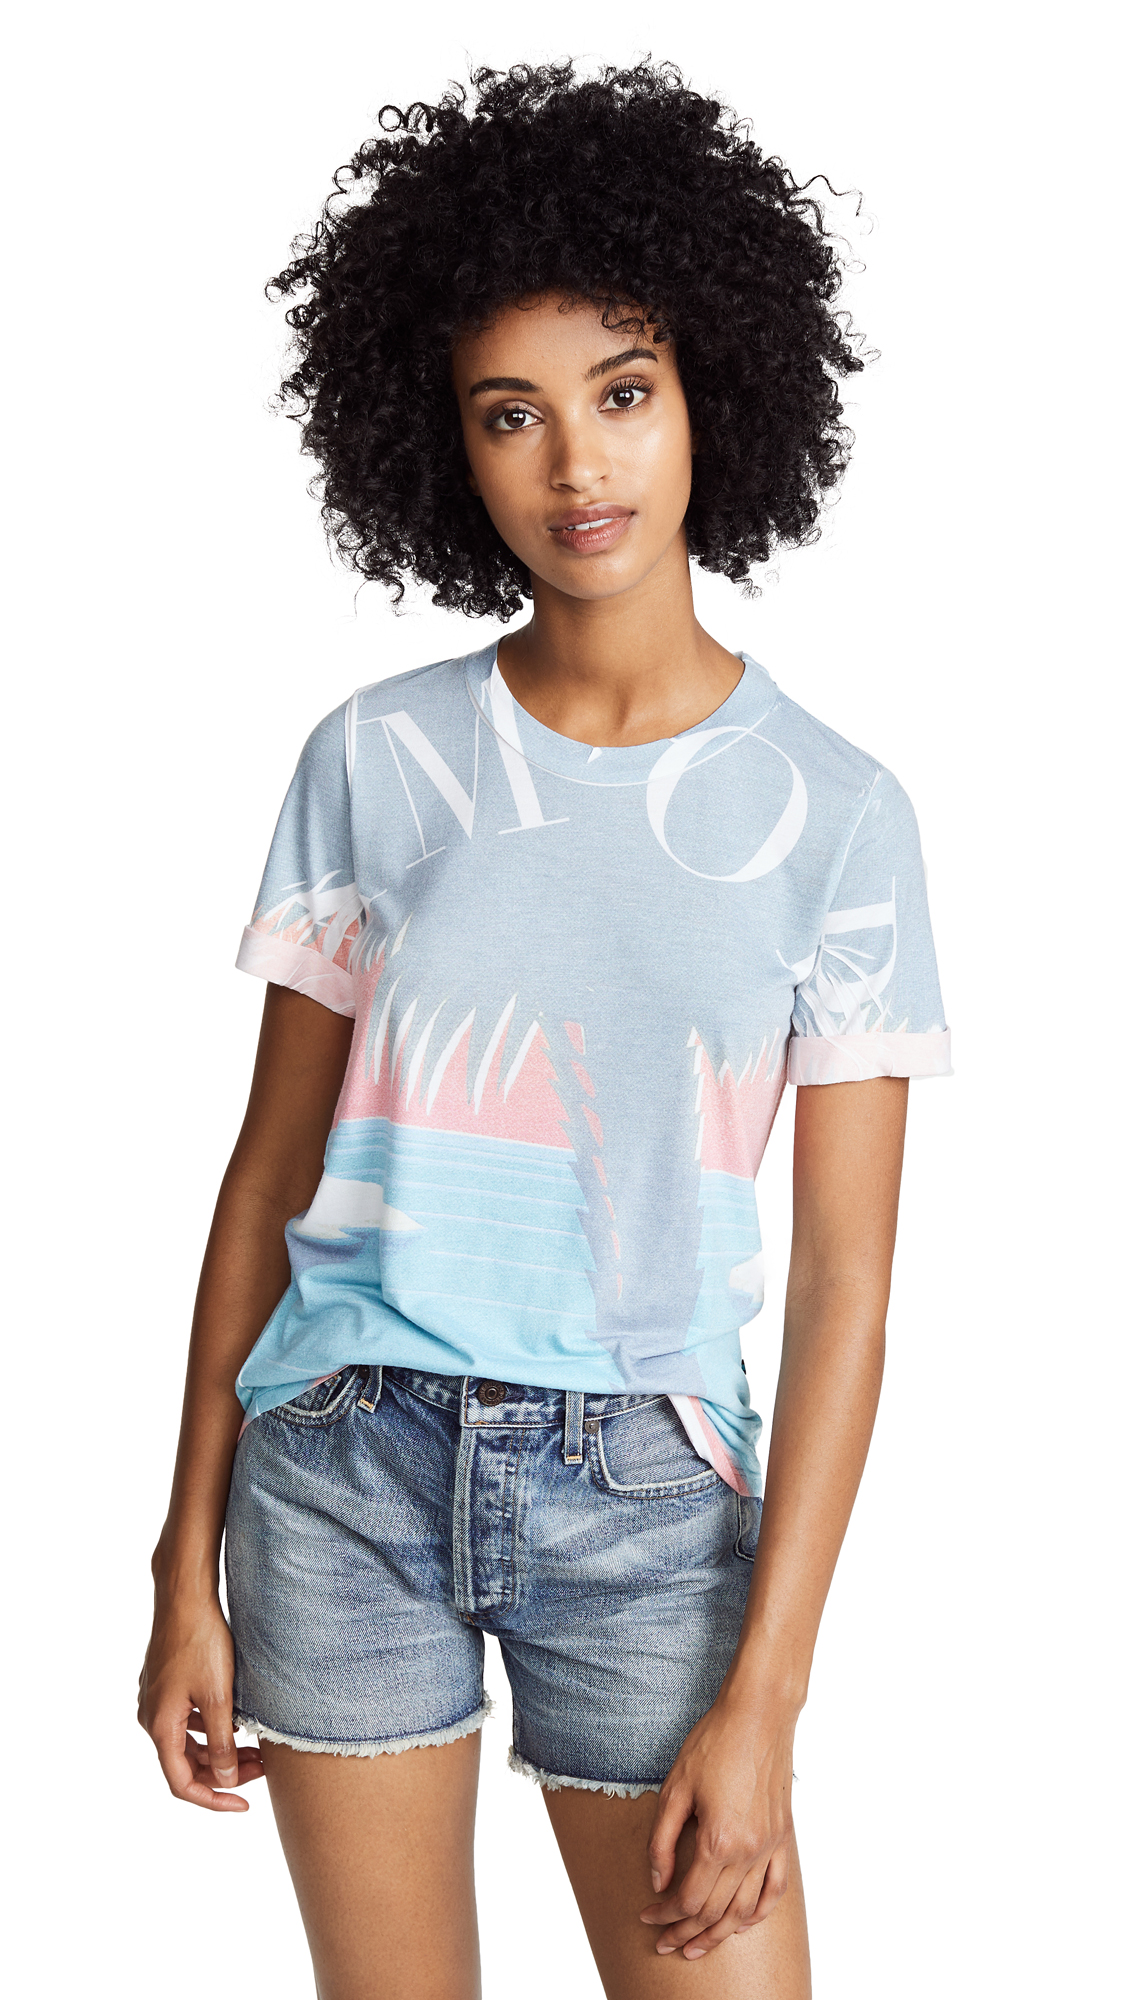 Sol Angeles Amore Palm Rolled Tee In Amore Palm